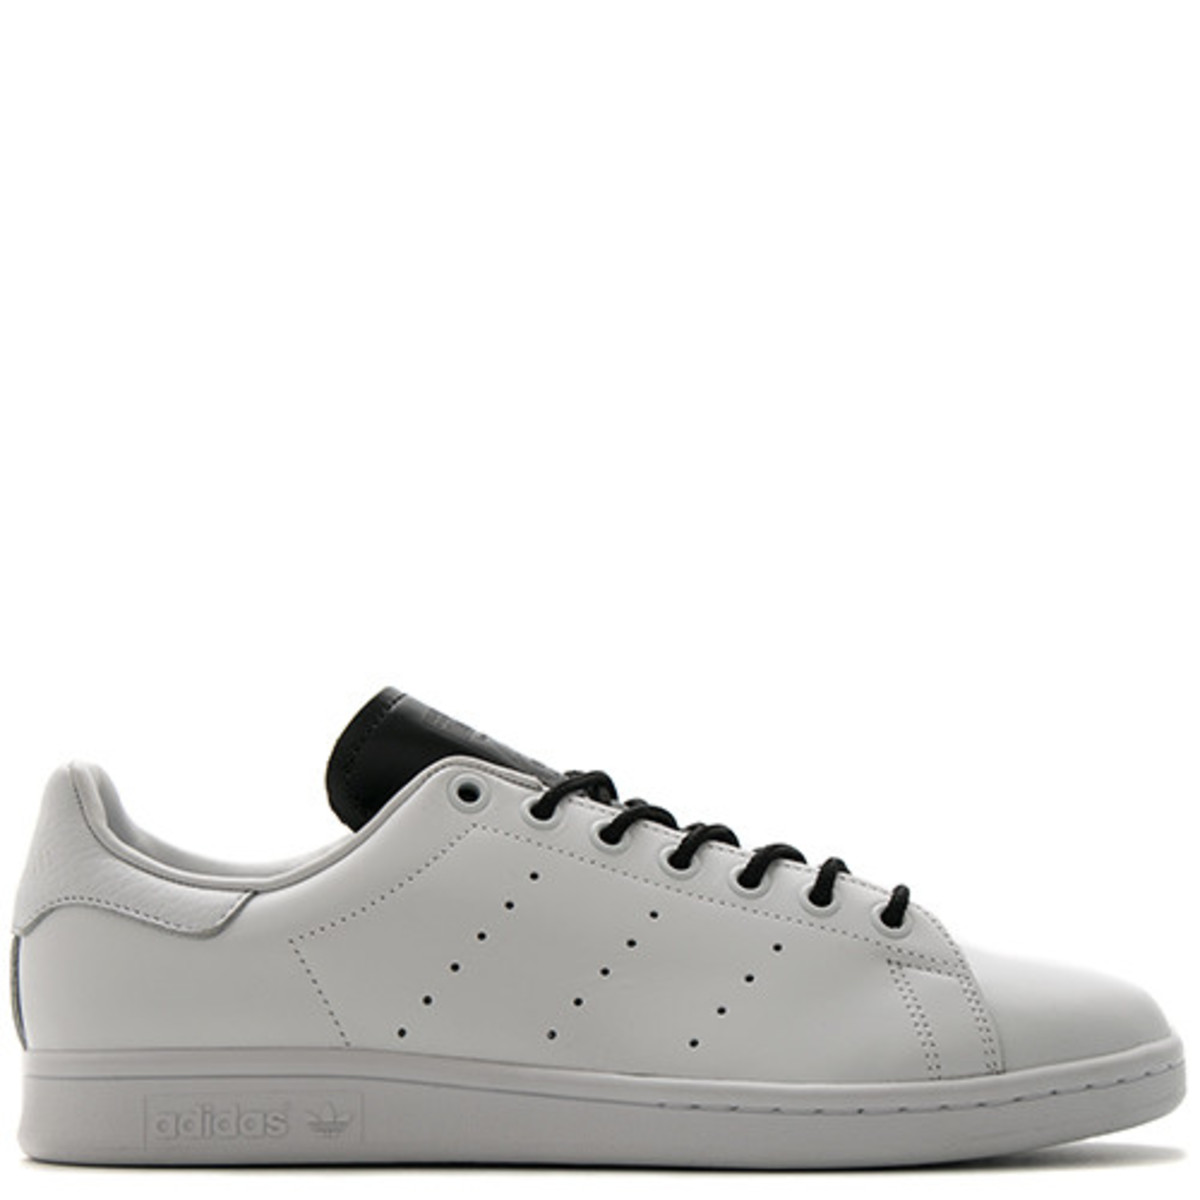 huge discount 35141 d5de2 ADIDAS STAN SMITH TUMBLED LEATHER   WHITE